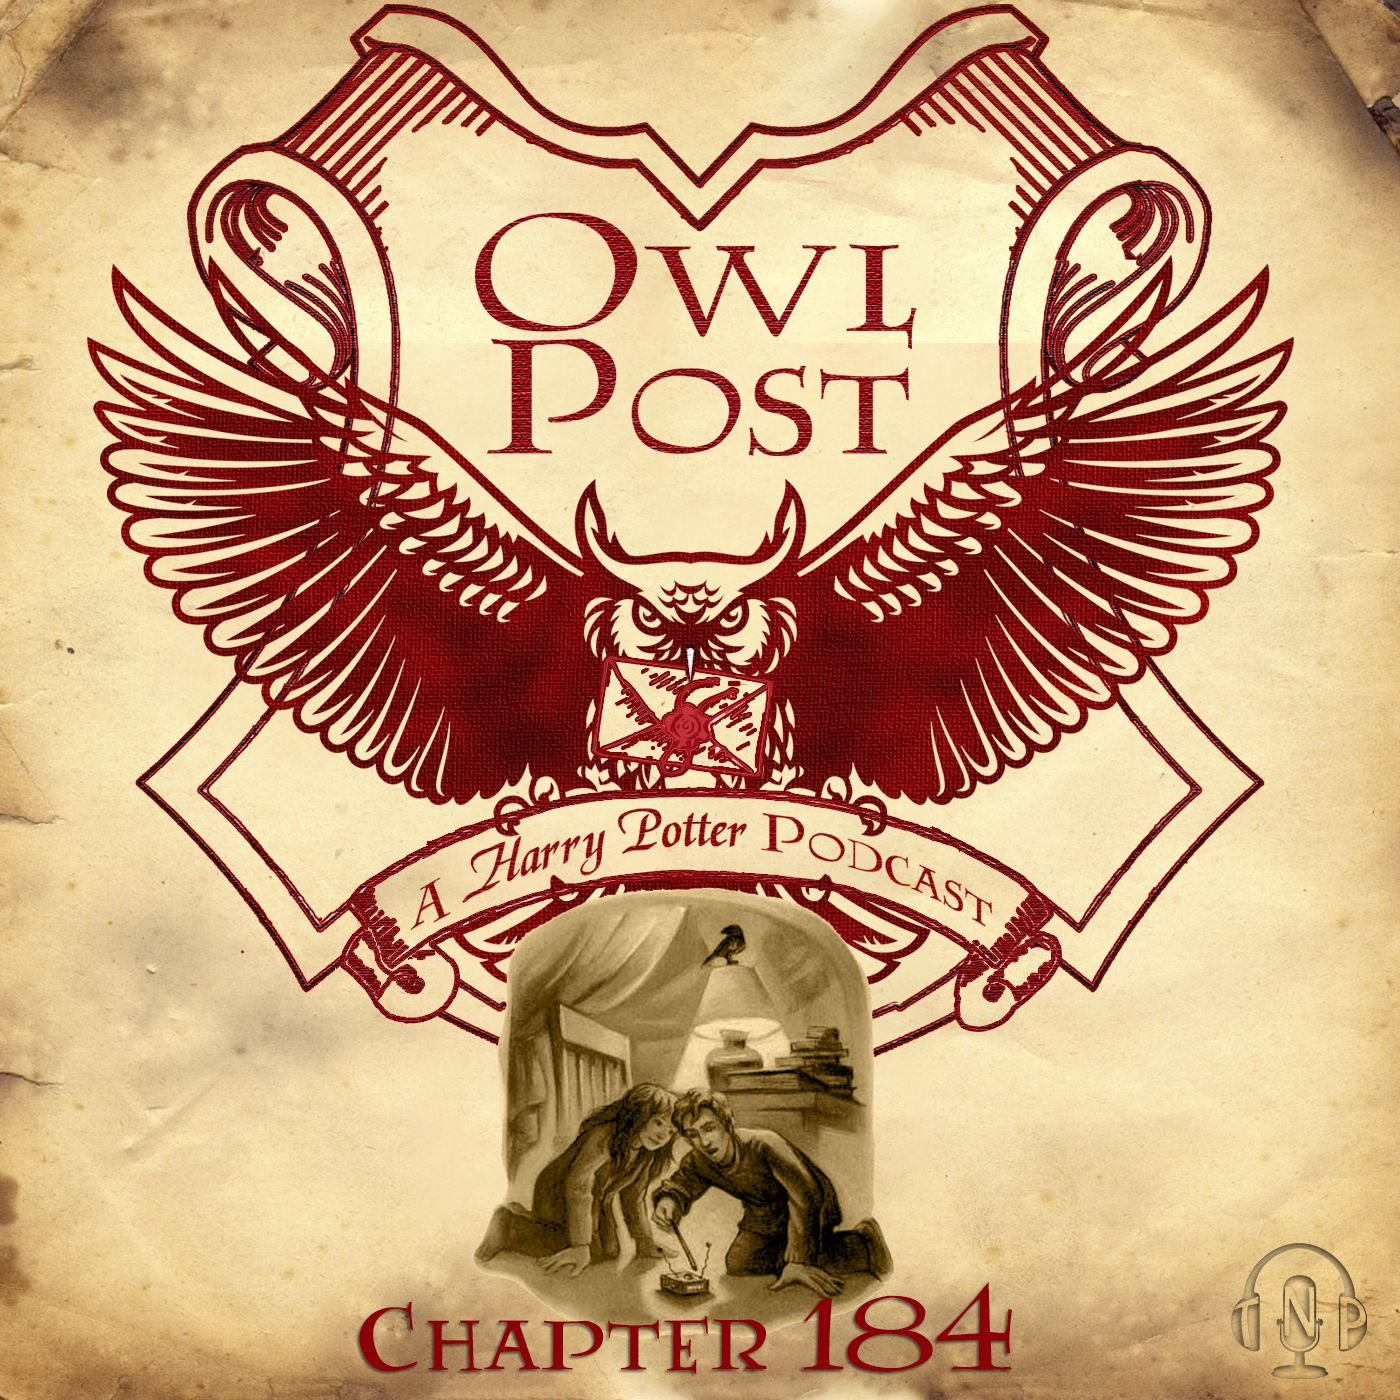 Chapter 184: The Deathly Hallows